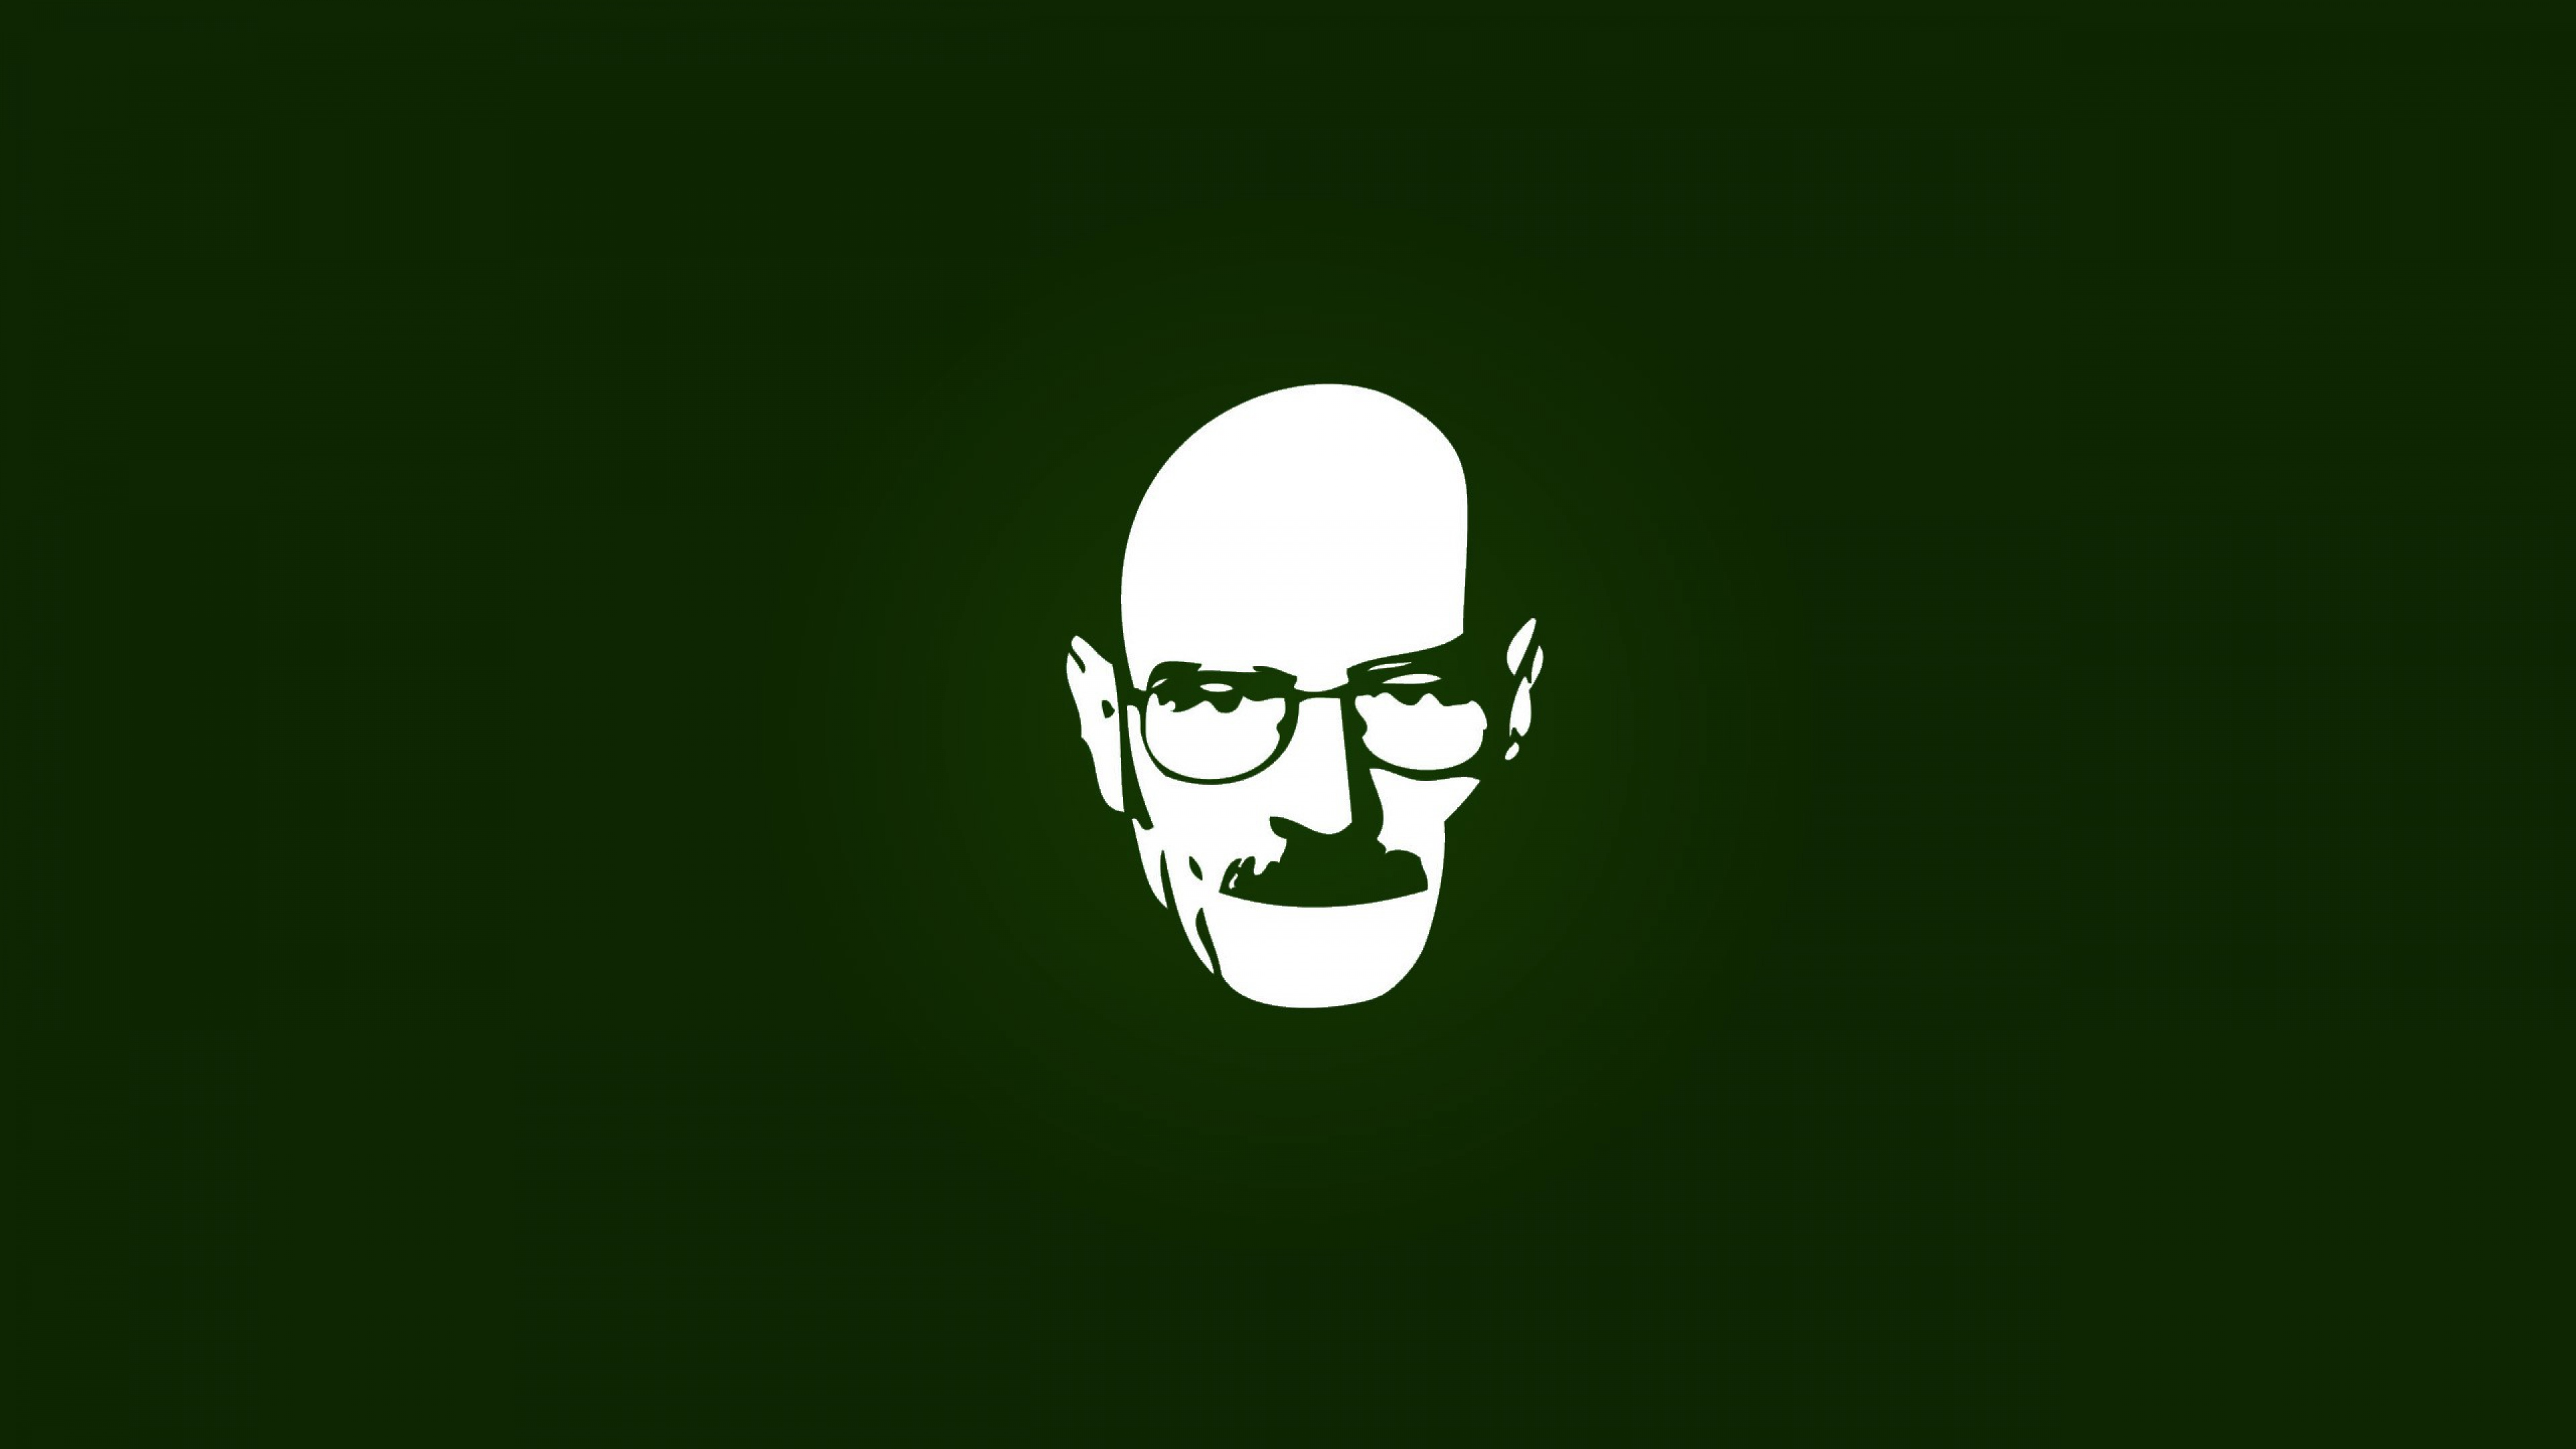 3840x2160 Wallpaper minimalism breaking bad walter white graphics 3840x2160